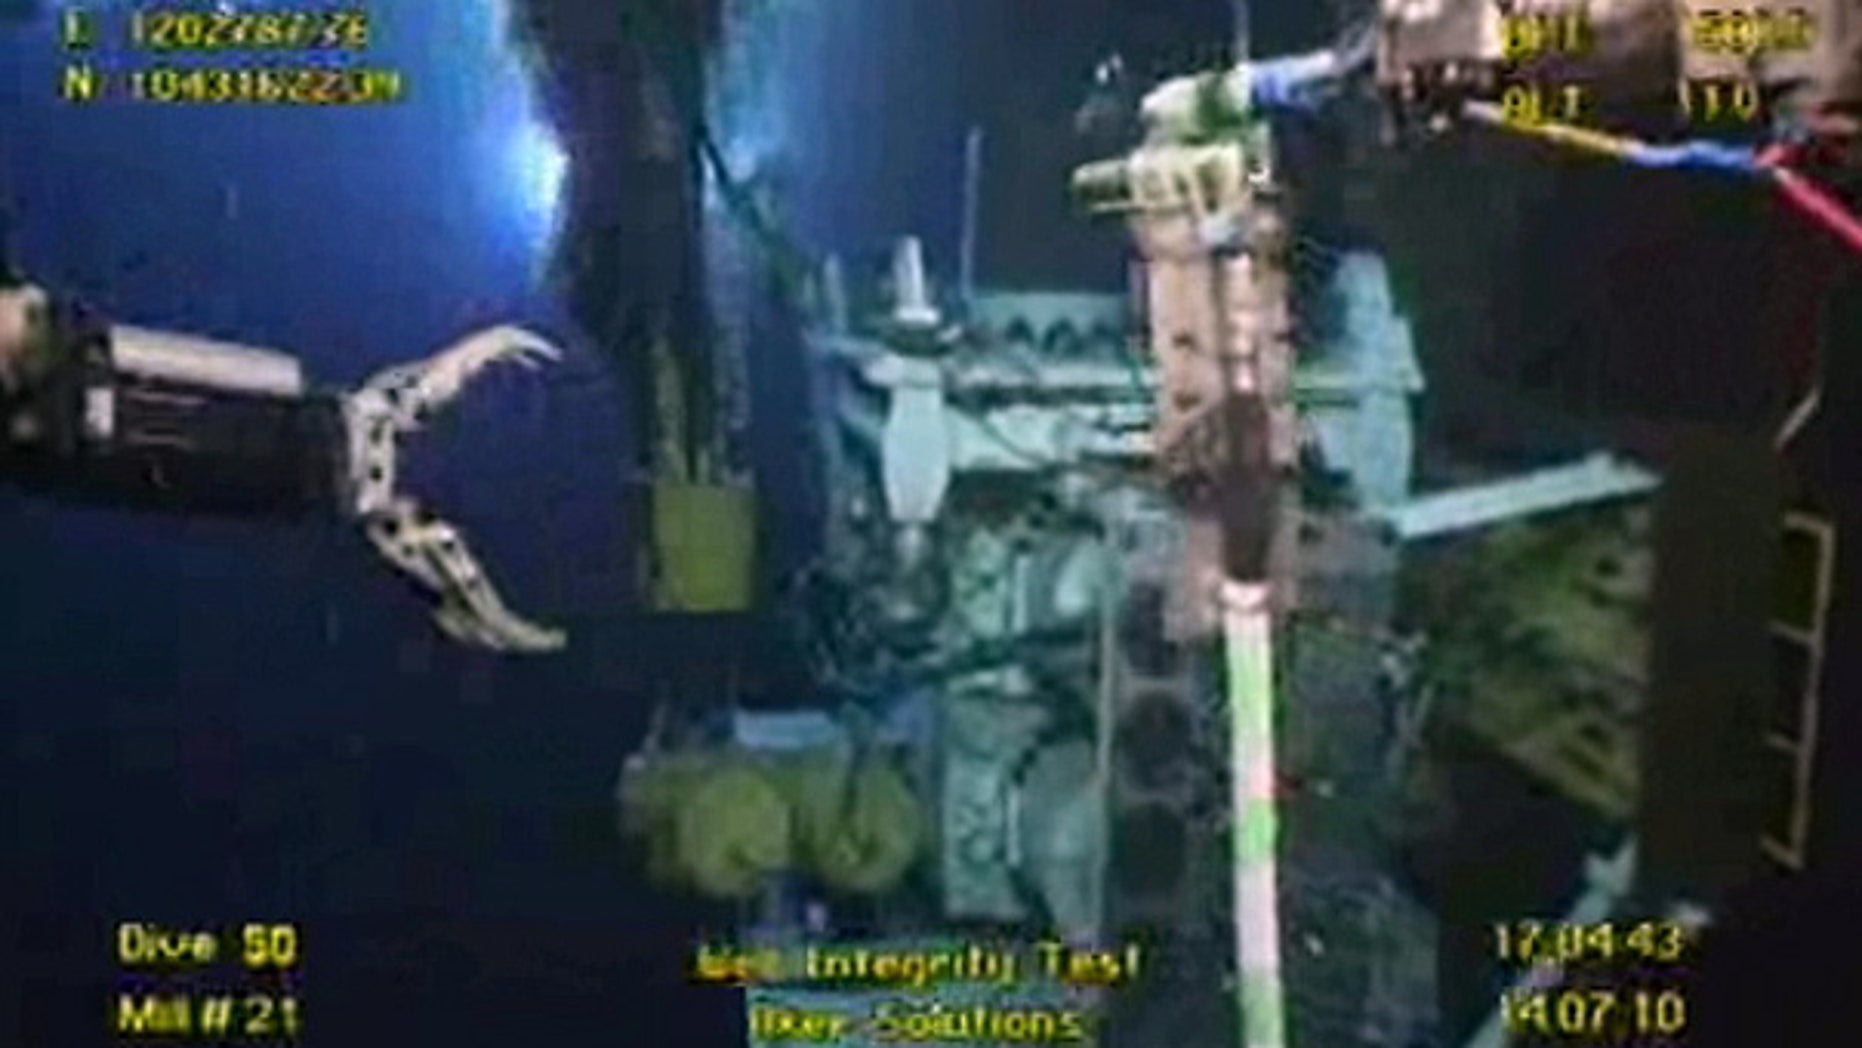 July 14: Underwater robots are seen working at the site of the BP leak in the Gulf.